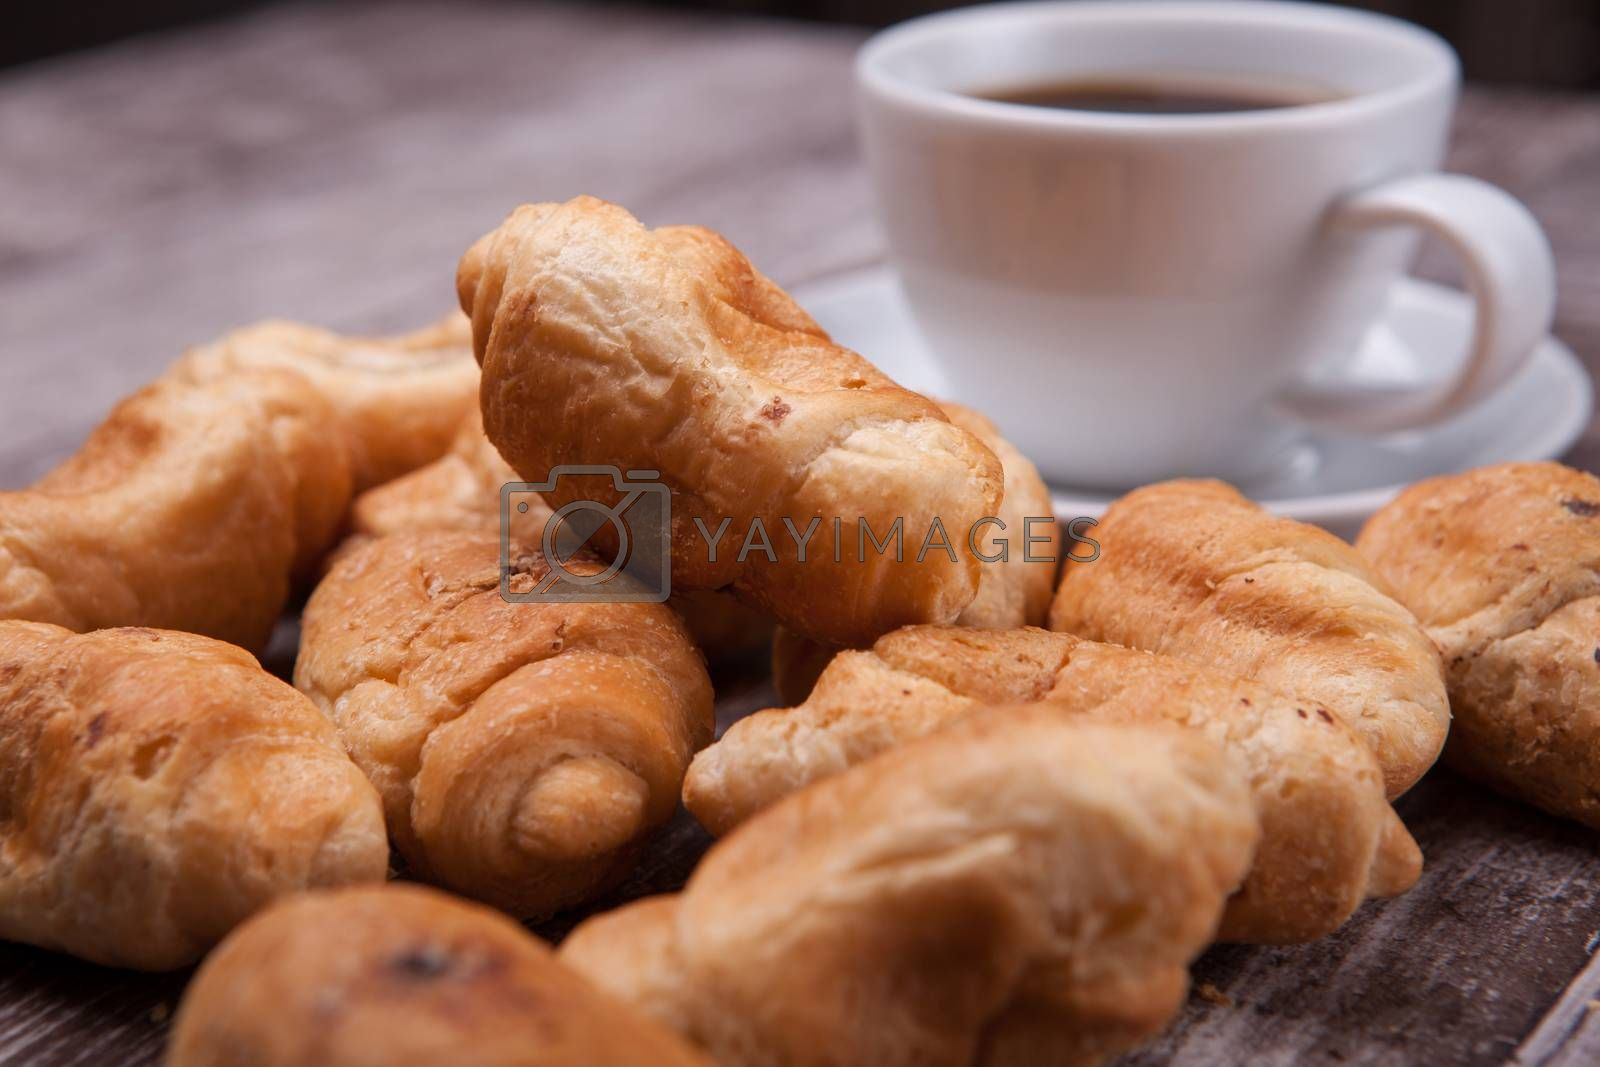 Freshly baked croissants on rustic wooden table with cup of coffee. Delicious coffee.